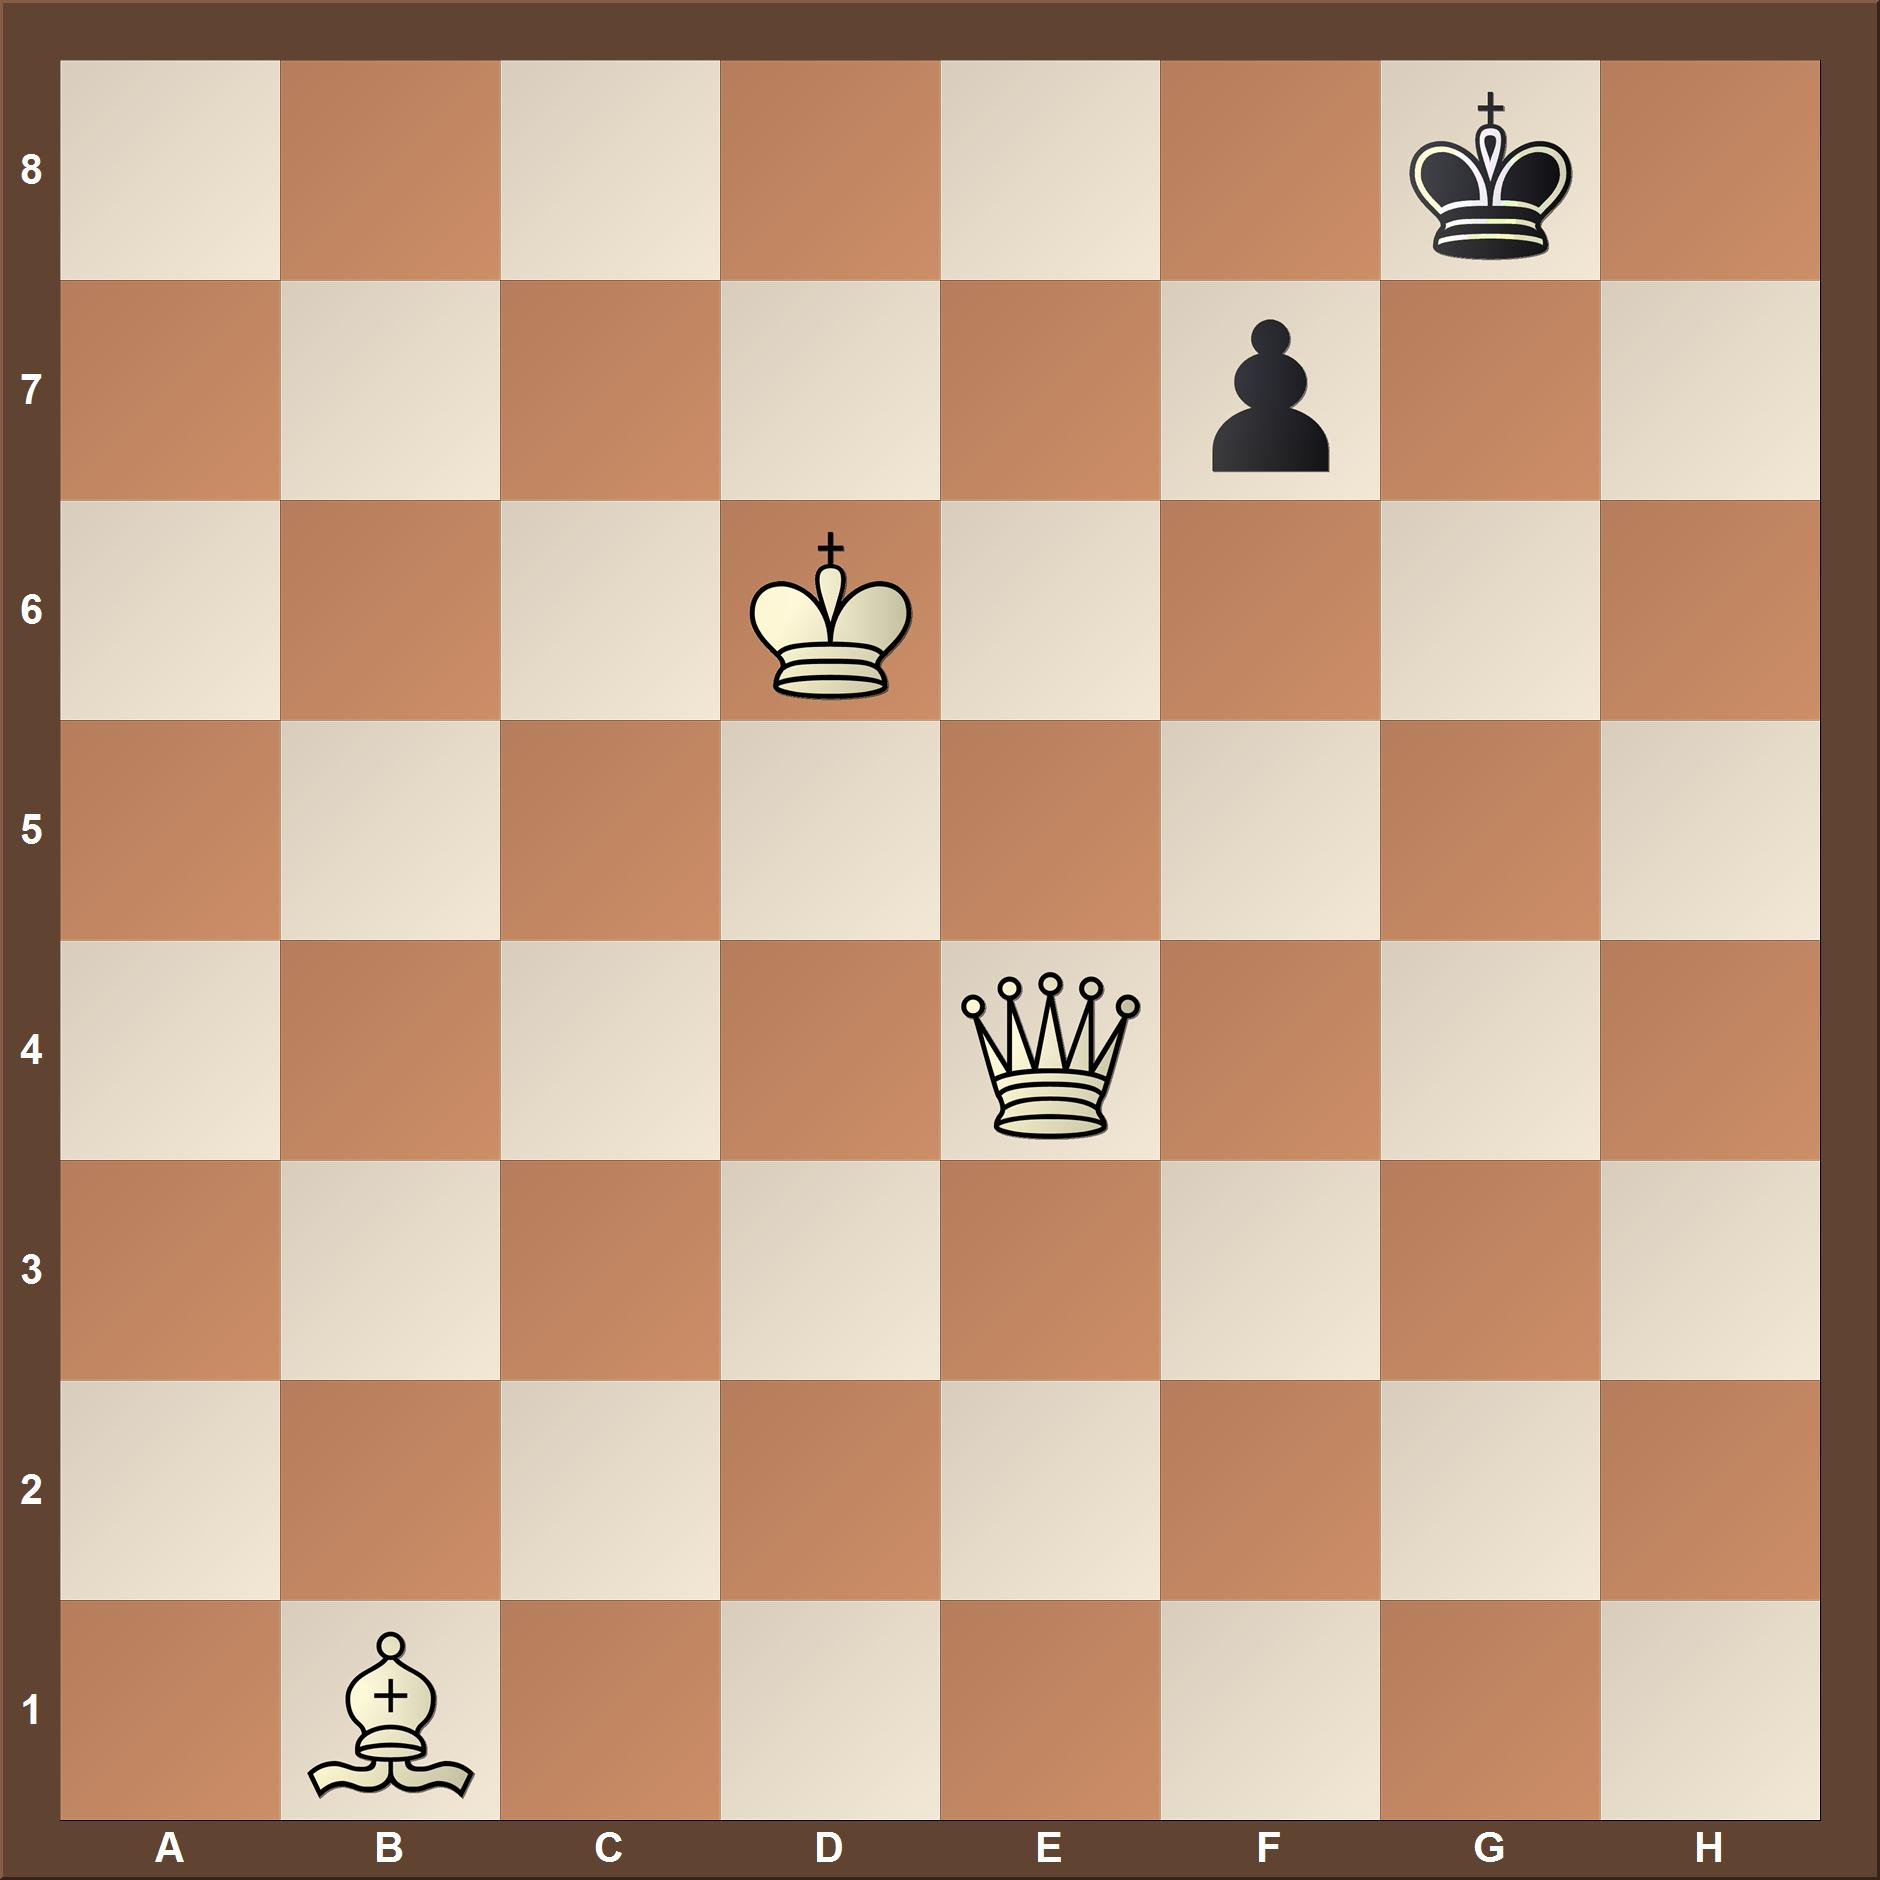 Checkmate in two move